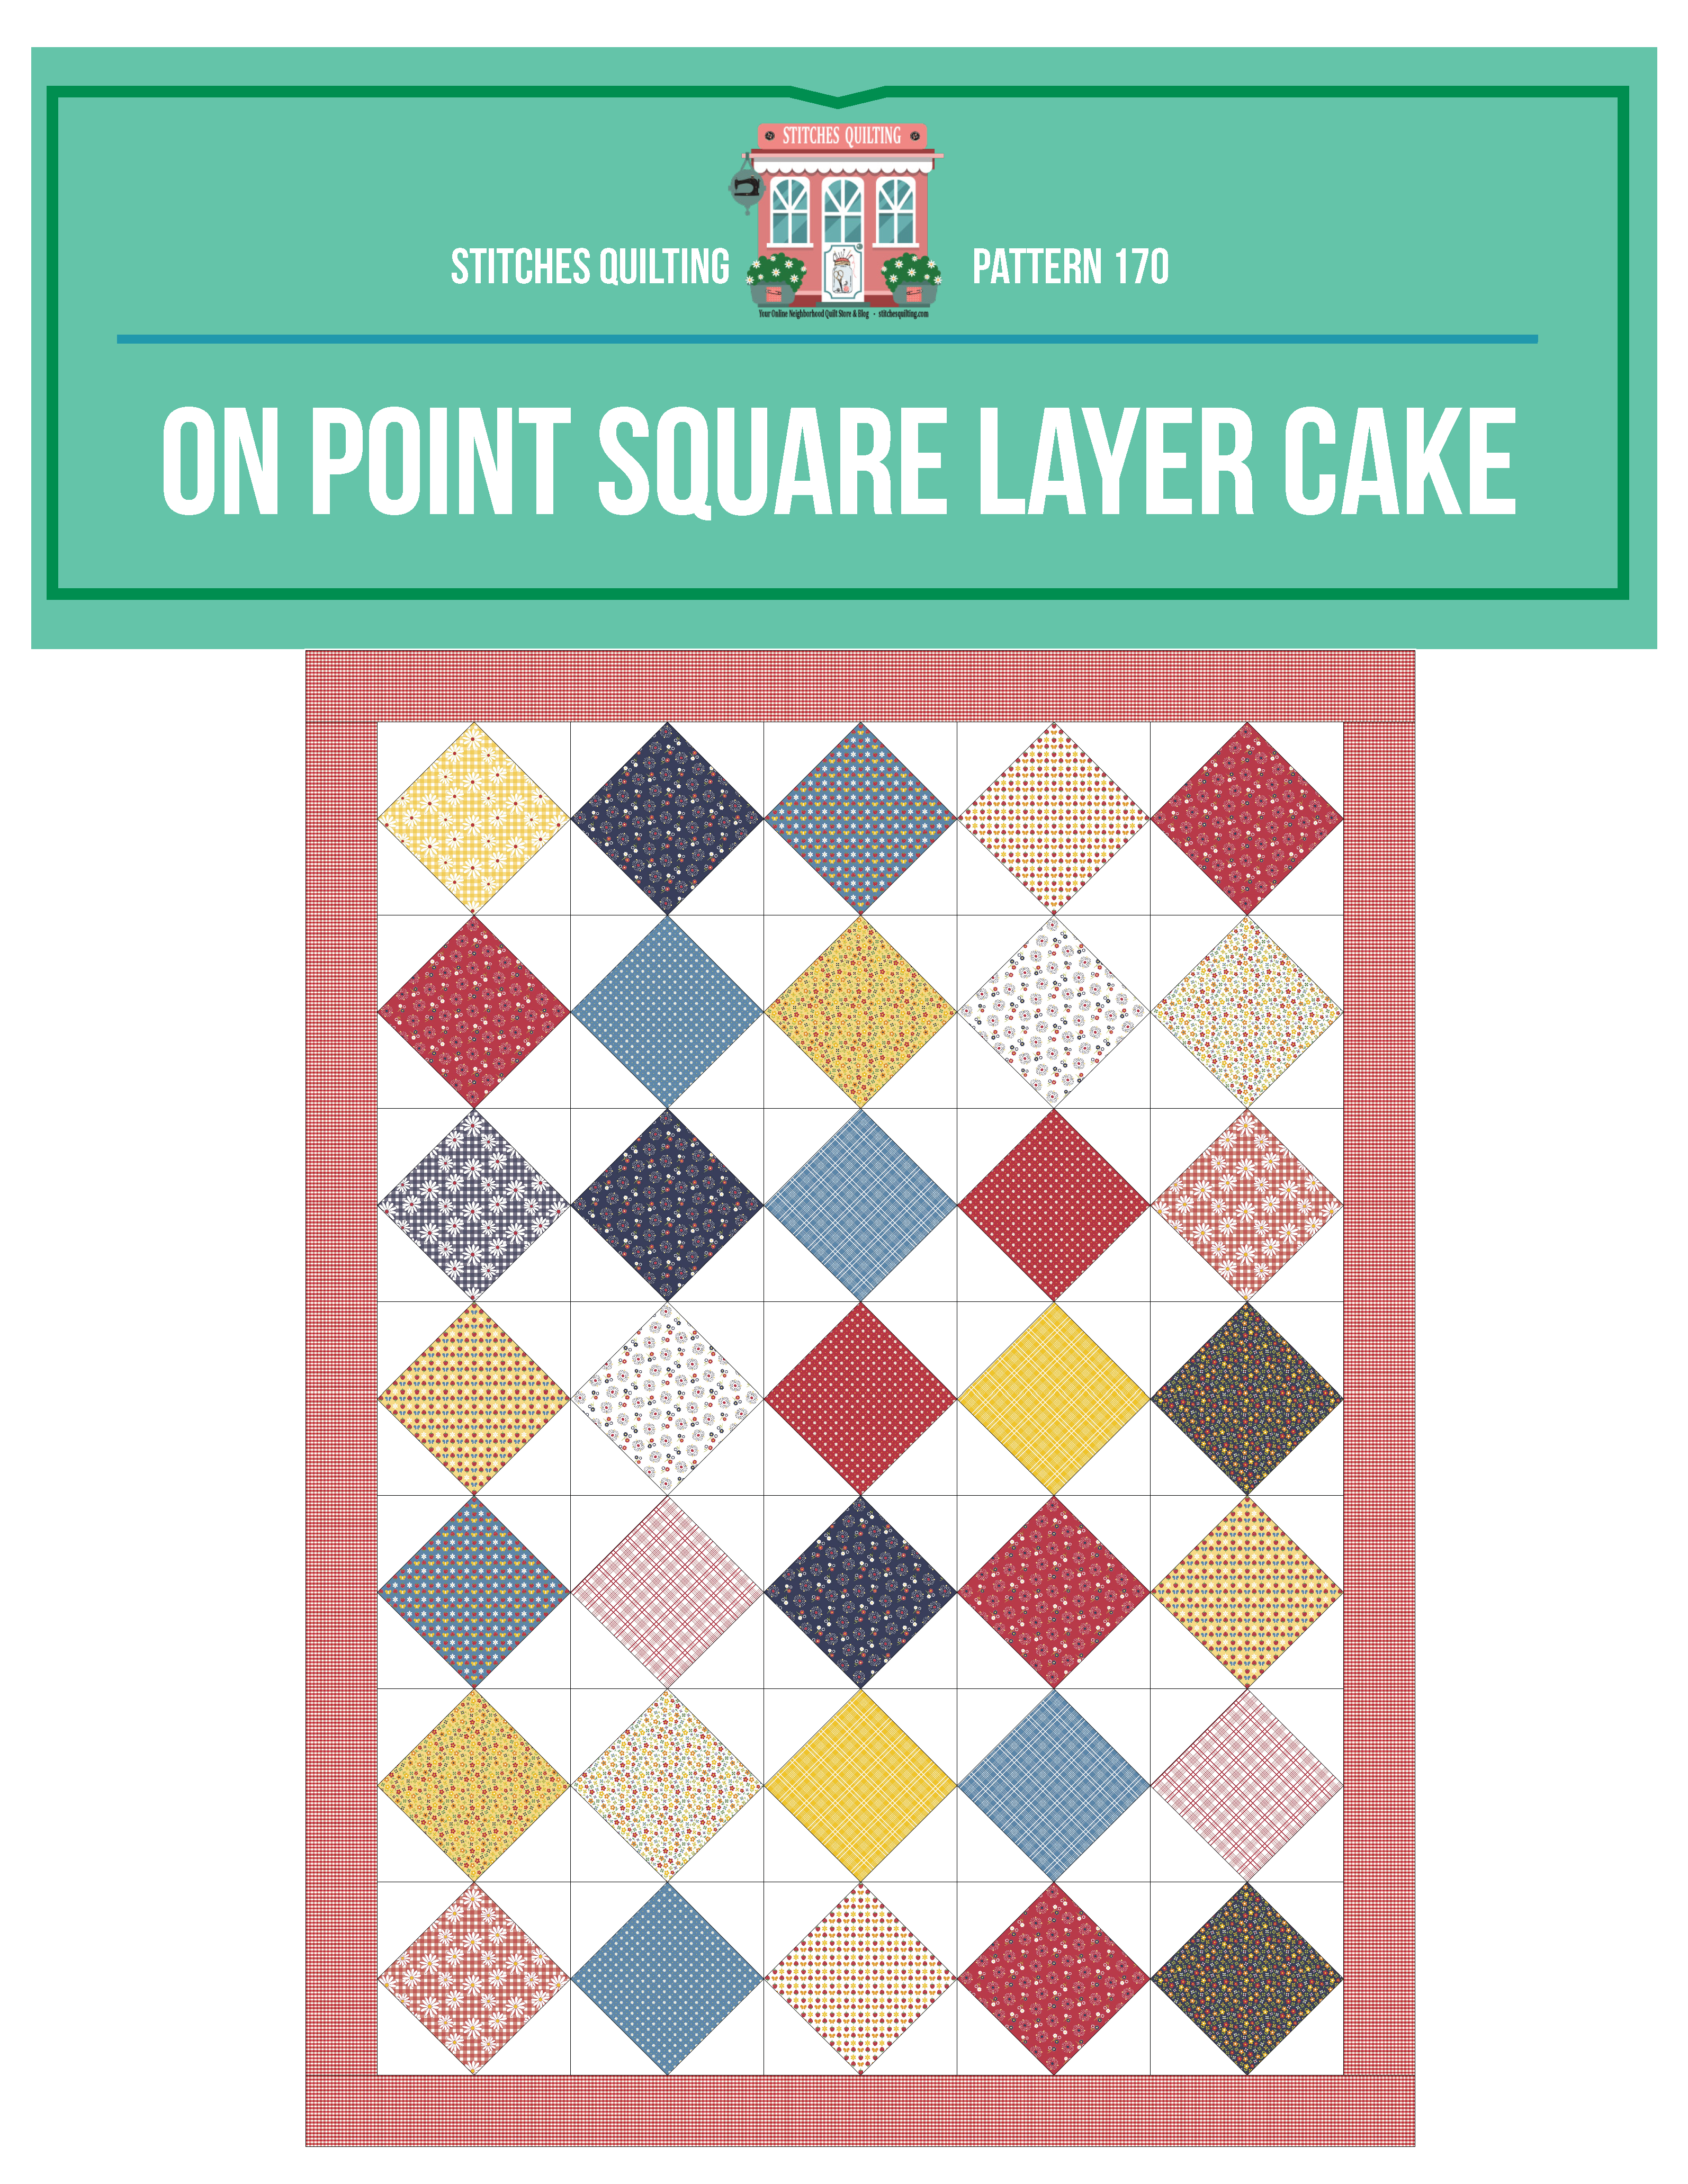 Onpoint Square Layer Cake Quilt Tutorial Free Pattern Stitches